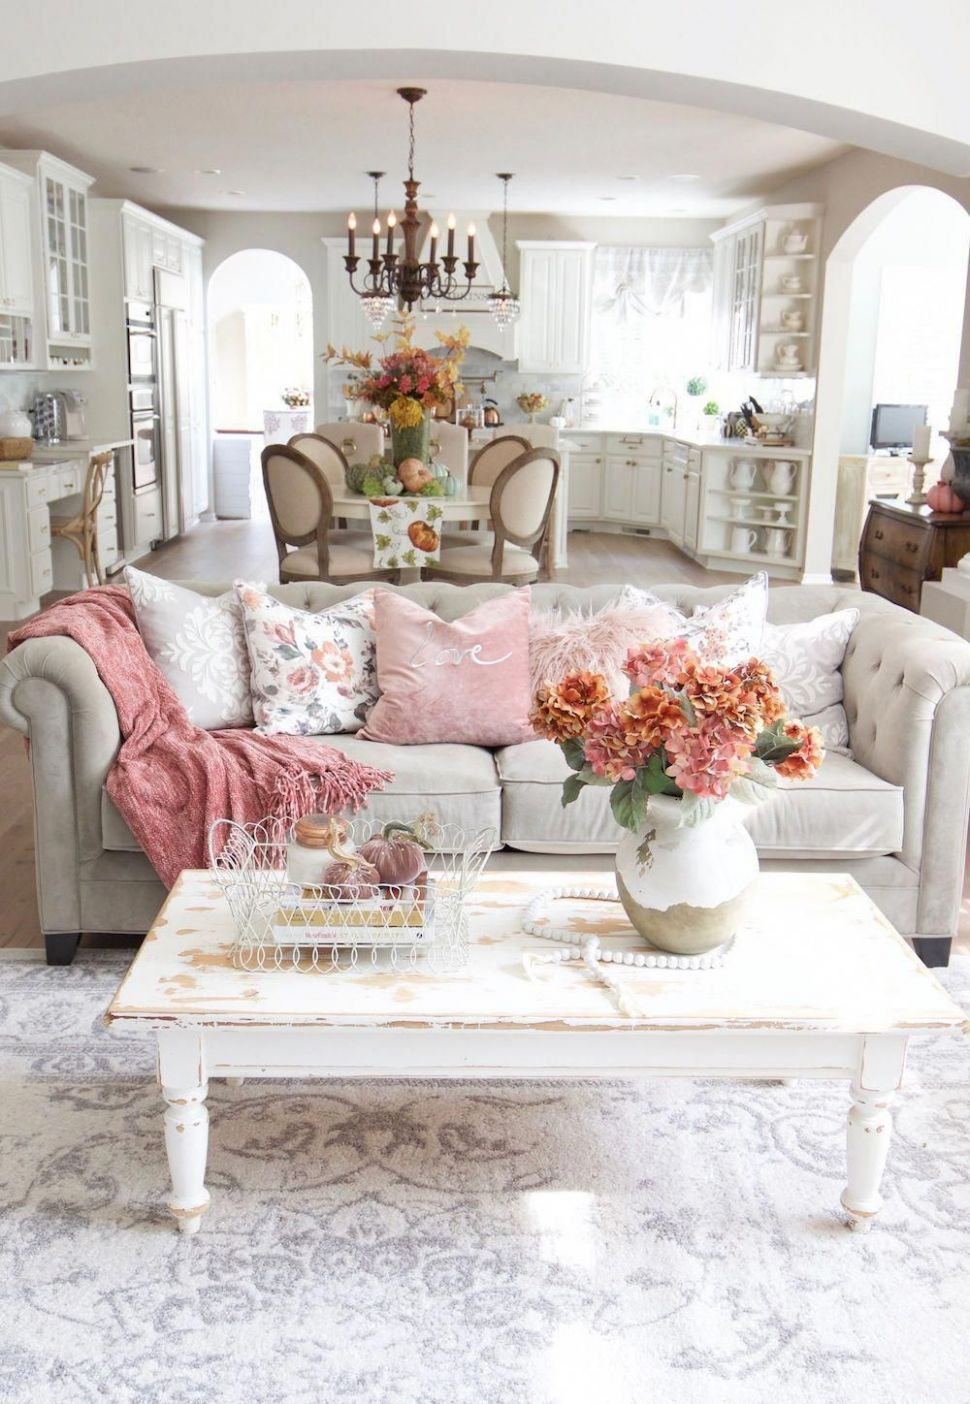 12+ Beautiful French Country Living Room Decor Ideas To Copy Asap ..